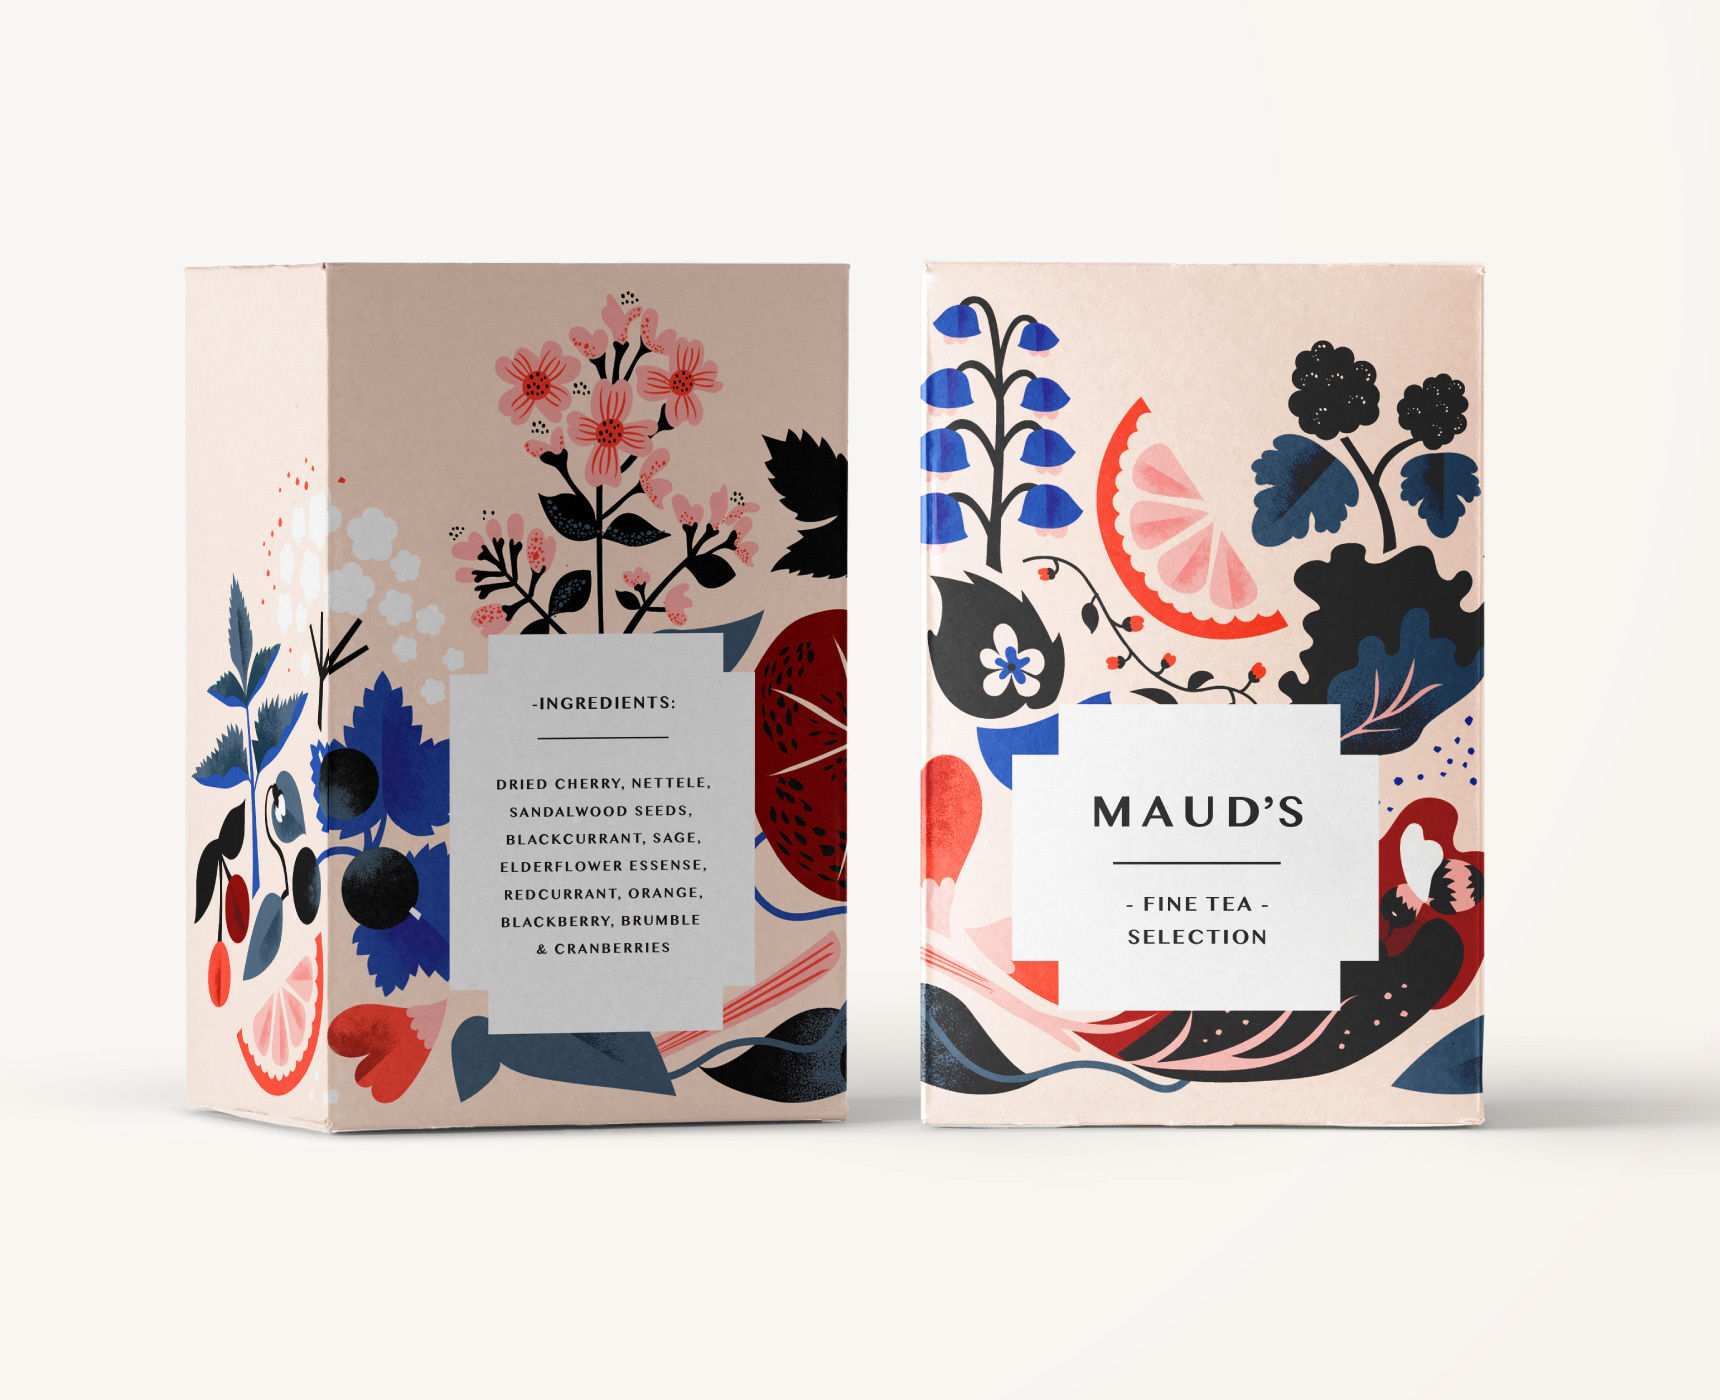 DARLING CLEMENTINE c/o AGENT MOLLY & CO for Mauds Tea